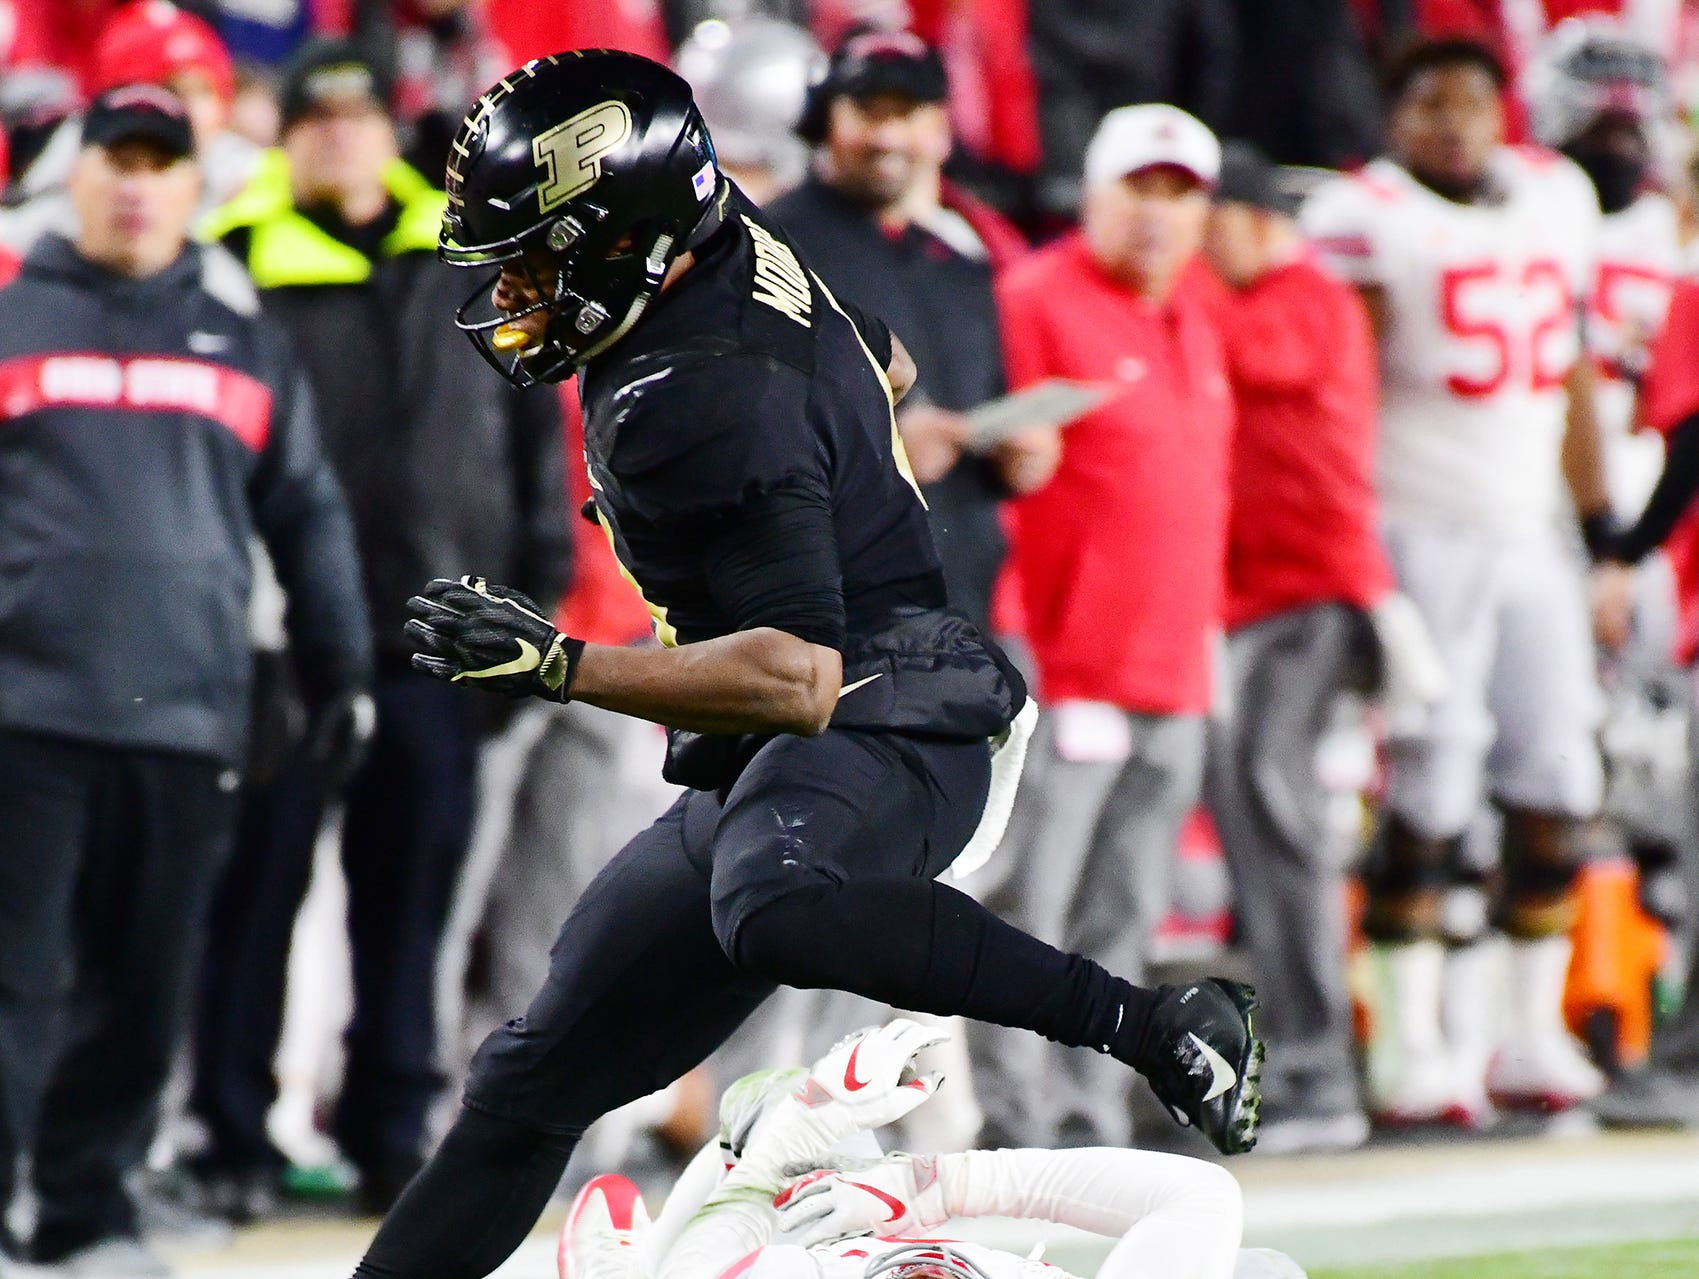 Rondale Moore of Purdue gets past Isaiah Pryor of Ohio State in the first half Saturday, October 20, 2018, at Ross-Ade Stadium. Purdue upset No. 2 ranked Ohio State 49-20.